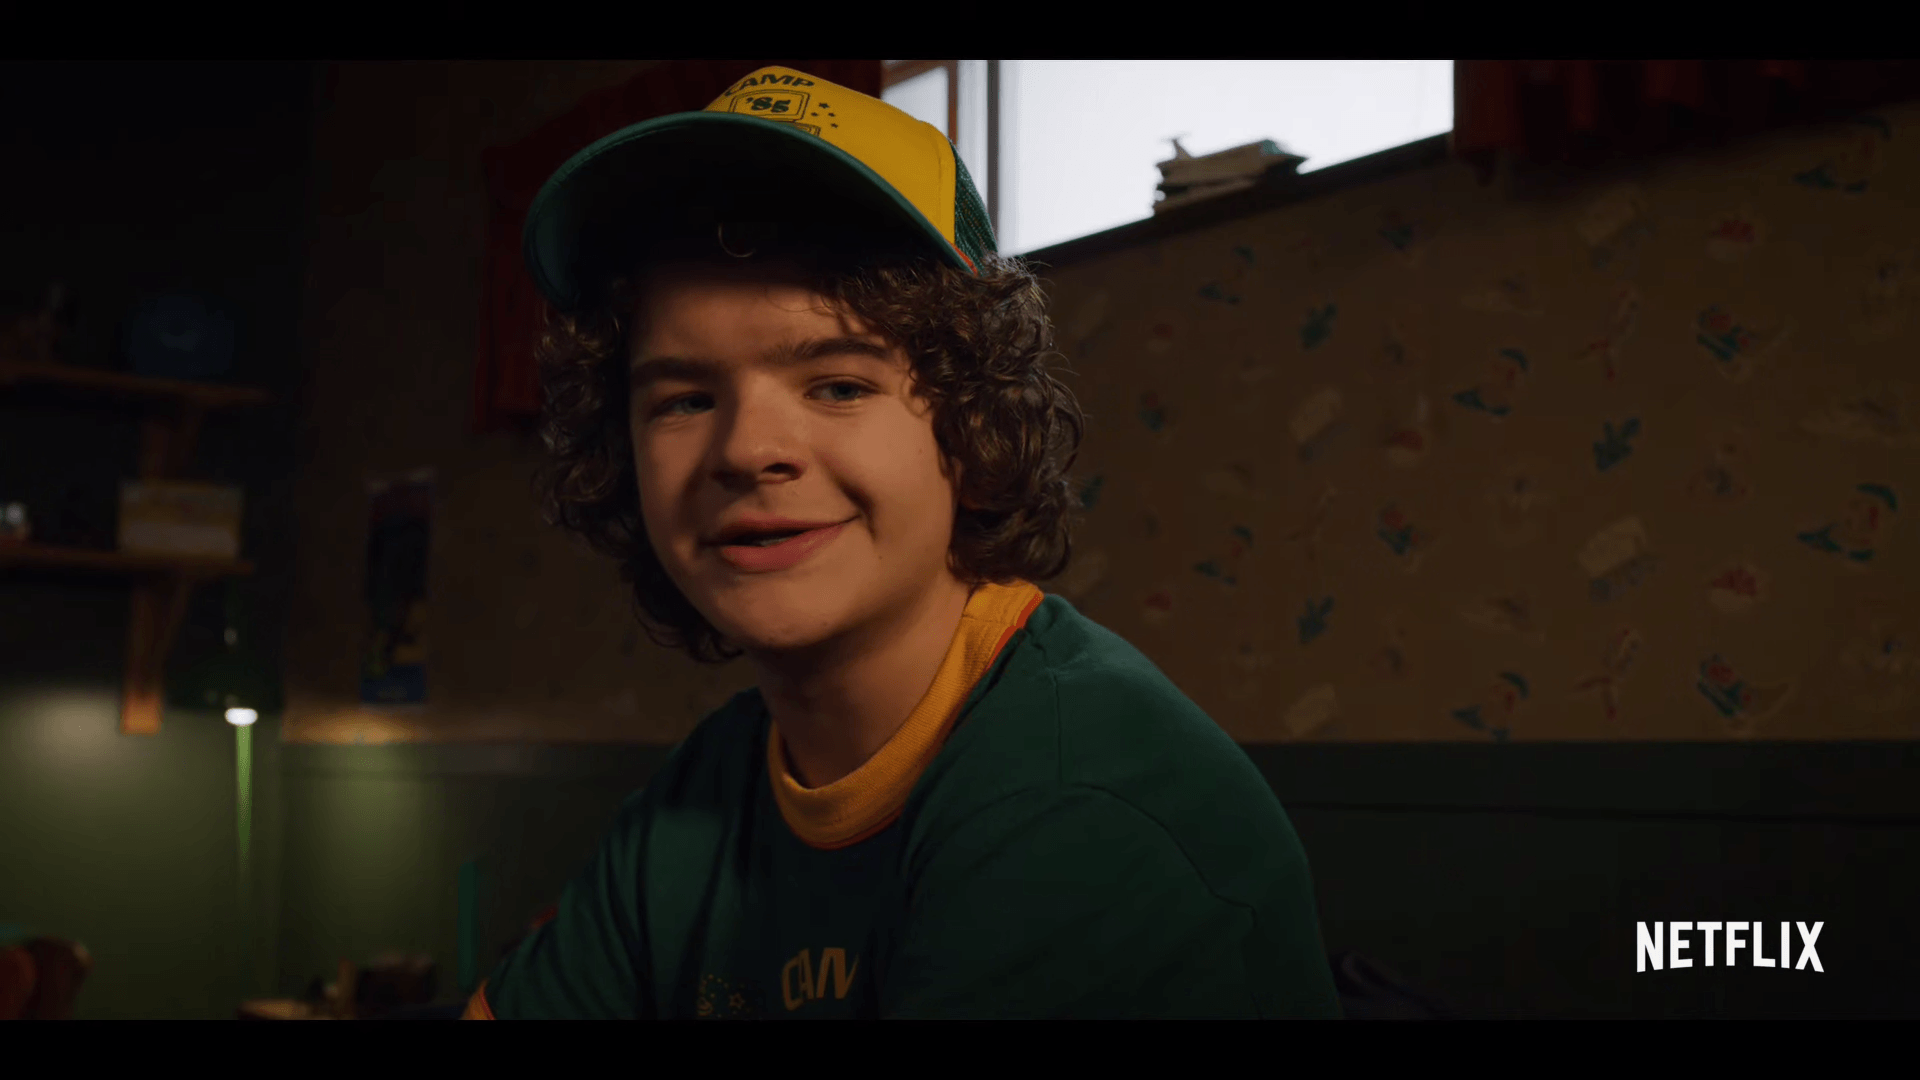 gaten matarazzo stranger things wallpaper 71674